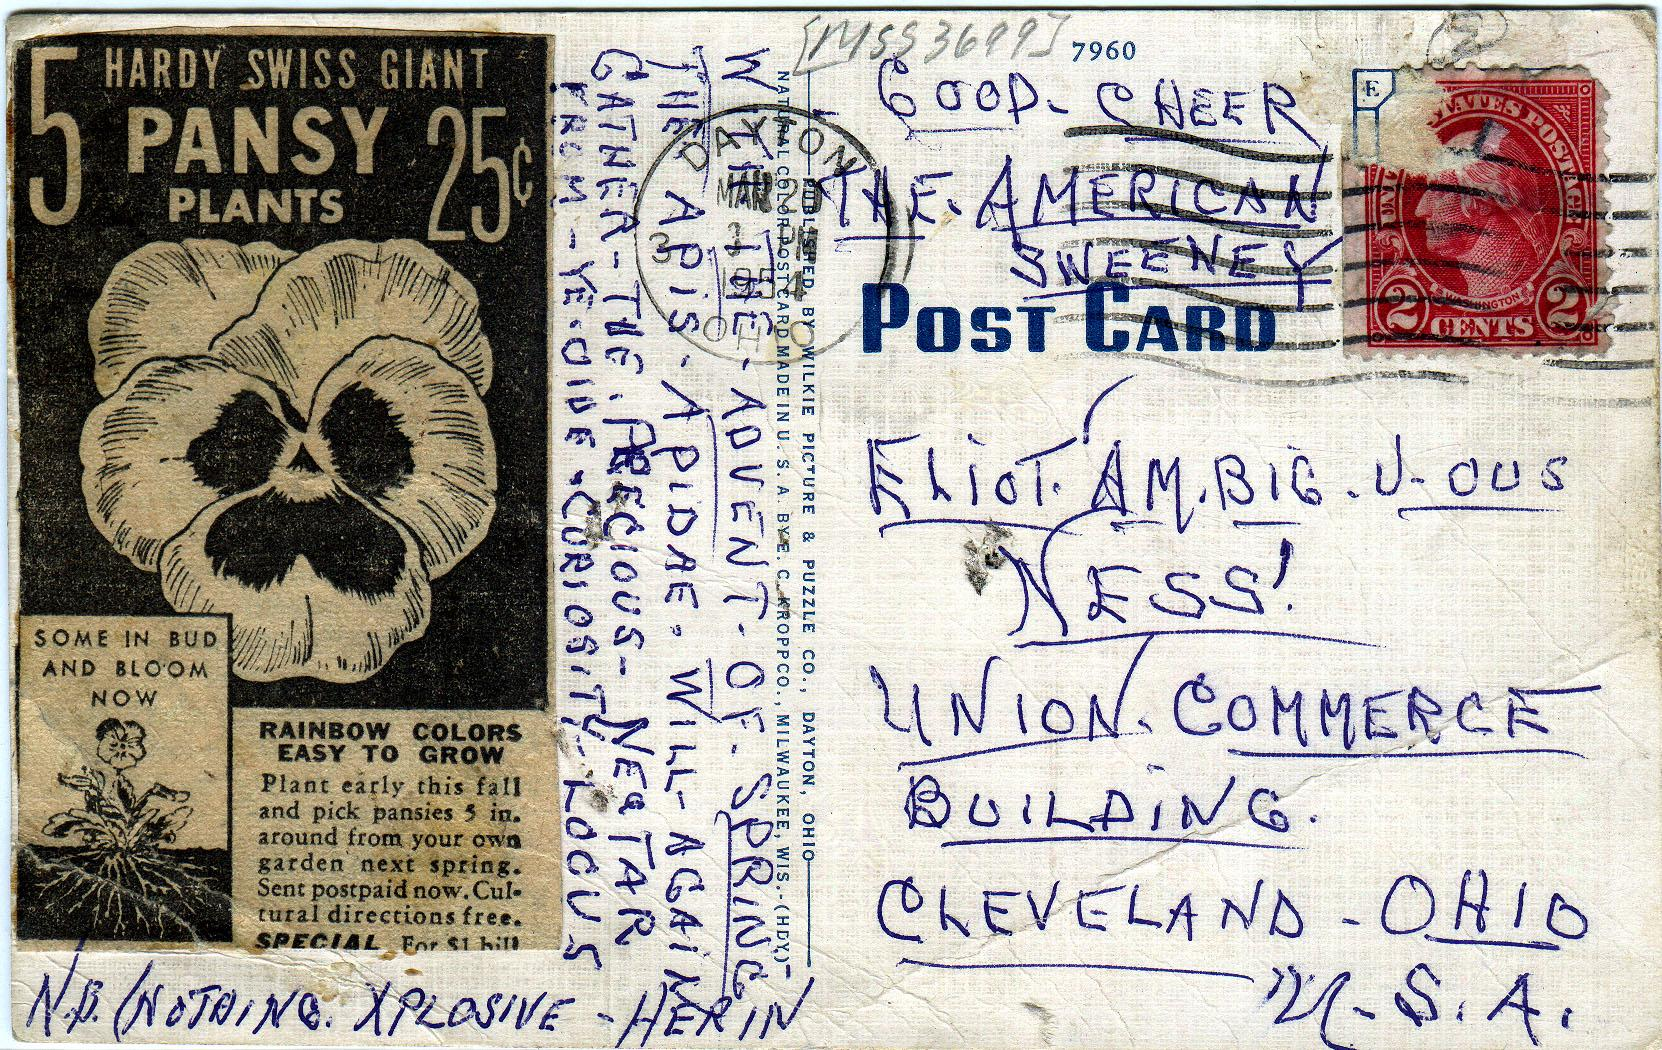 Postcard (1 of 5) sent to Elliot Ness in 1954 by an asylum inmate believed by some to be the Torso Murderer.